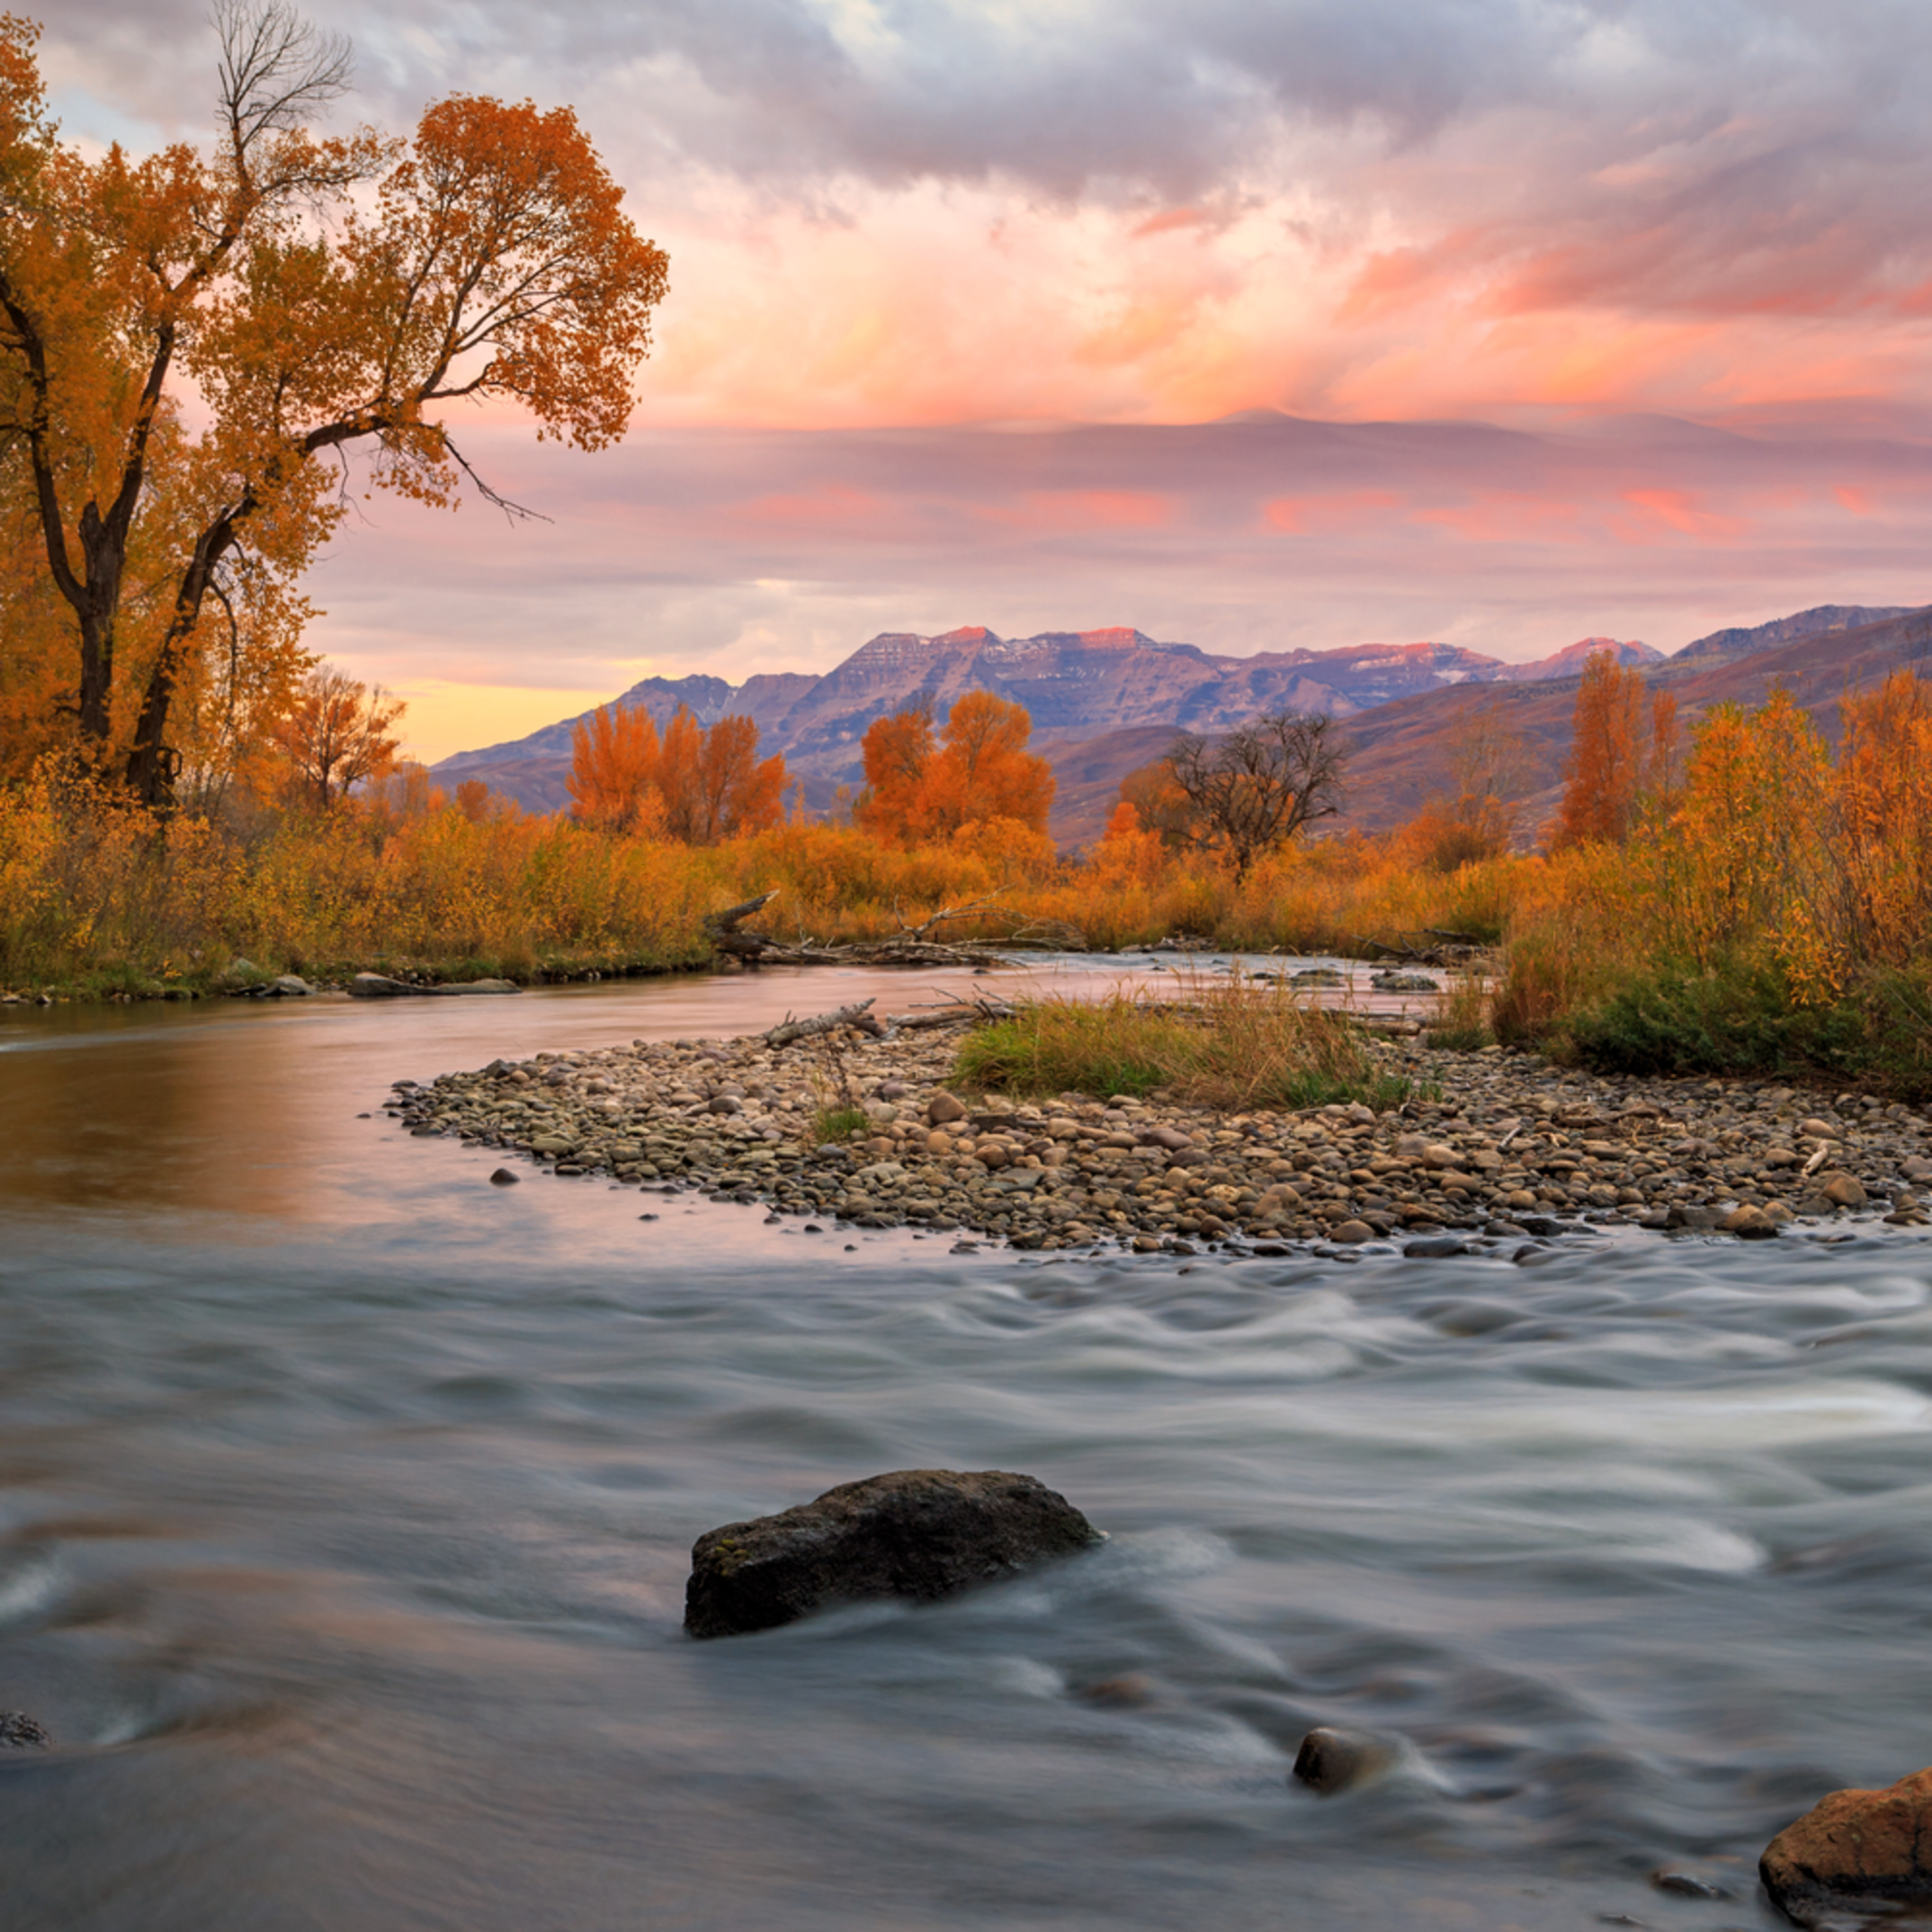 October sunrise at the provo river heber valley jwt1lh